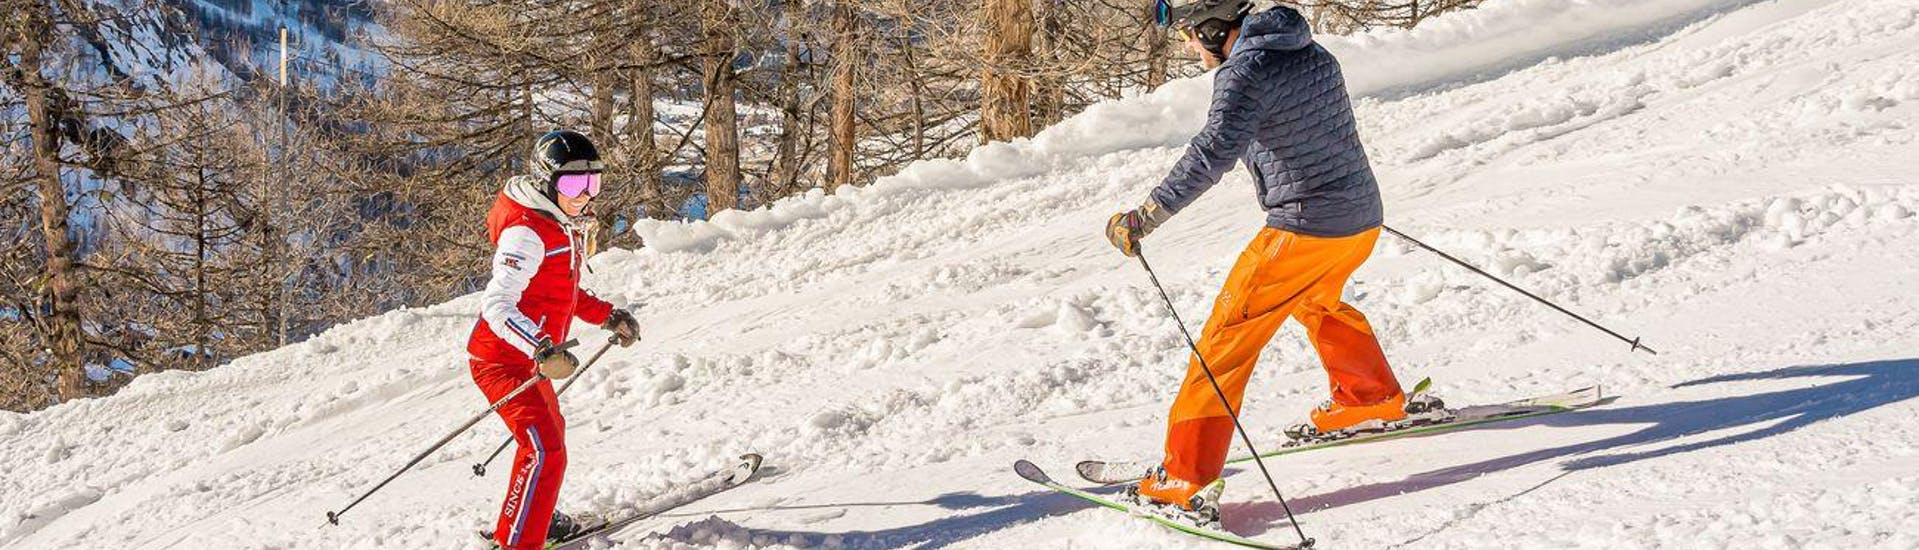 Adult skier learns how to ski during the Private Ski Lessons for Adults - All Levels while being in good hands of an experienced instructor from ESF Val d'Isère.